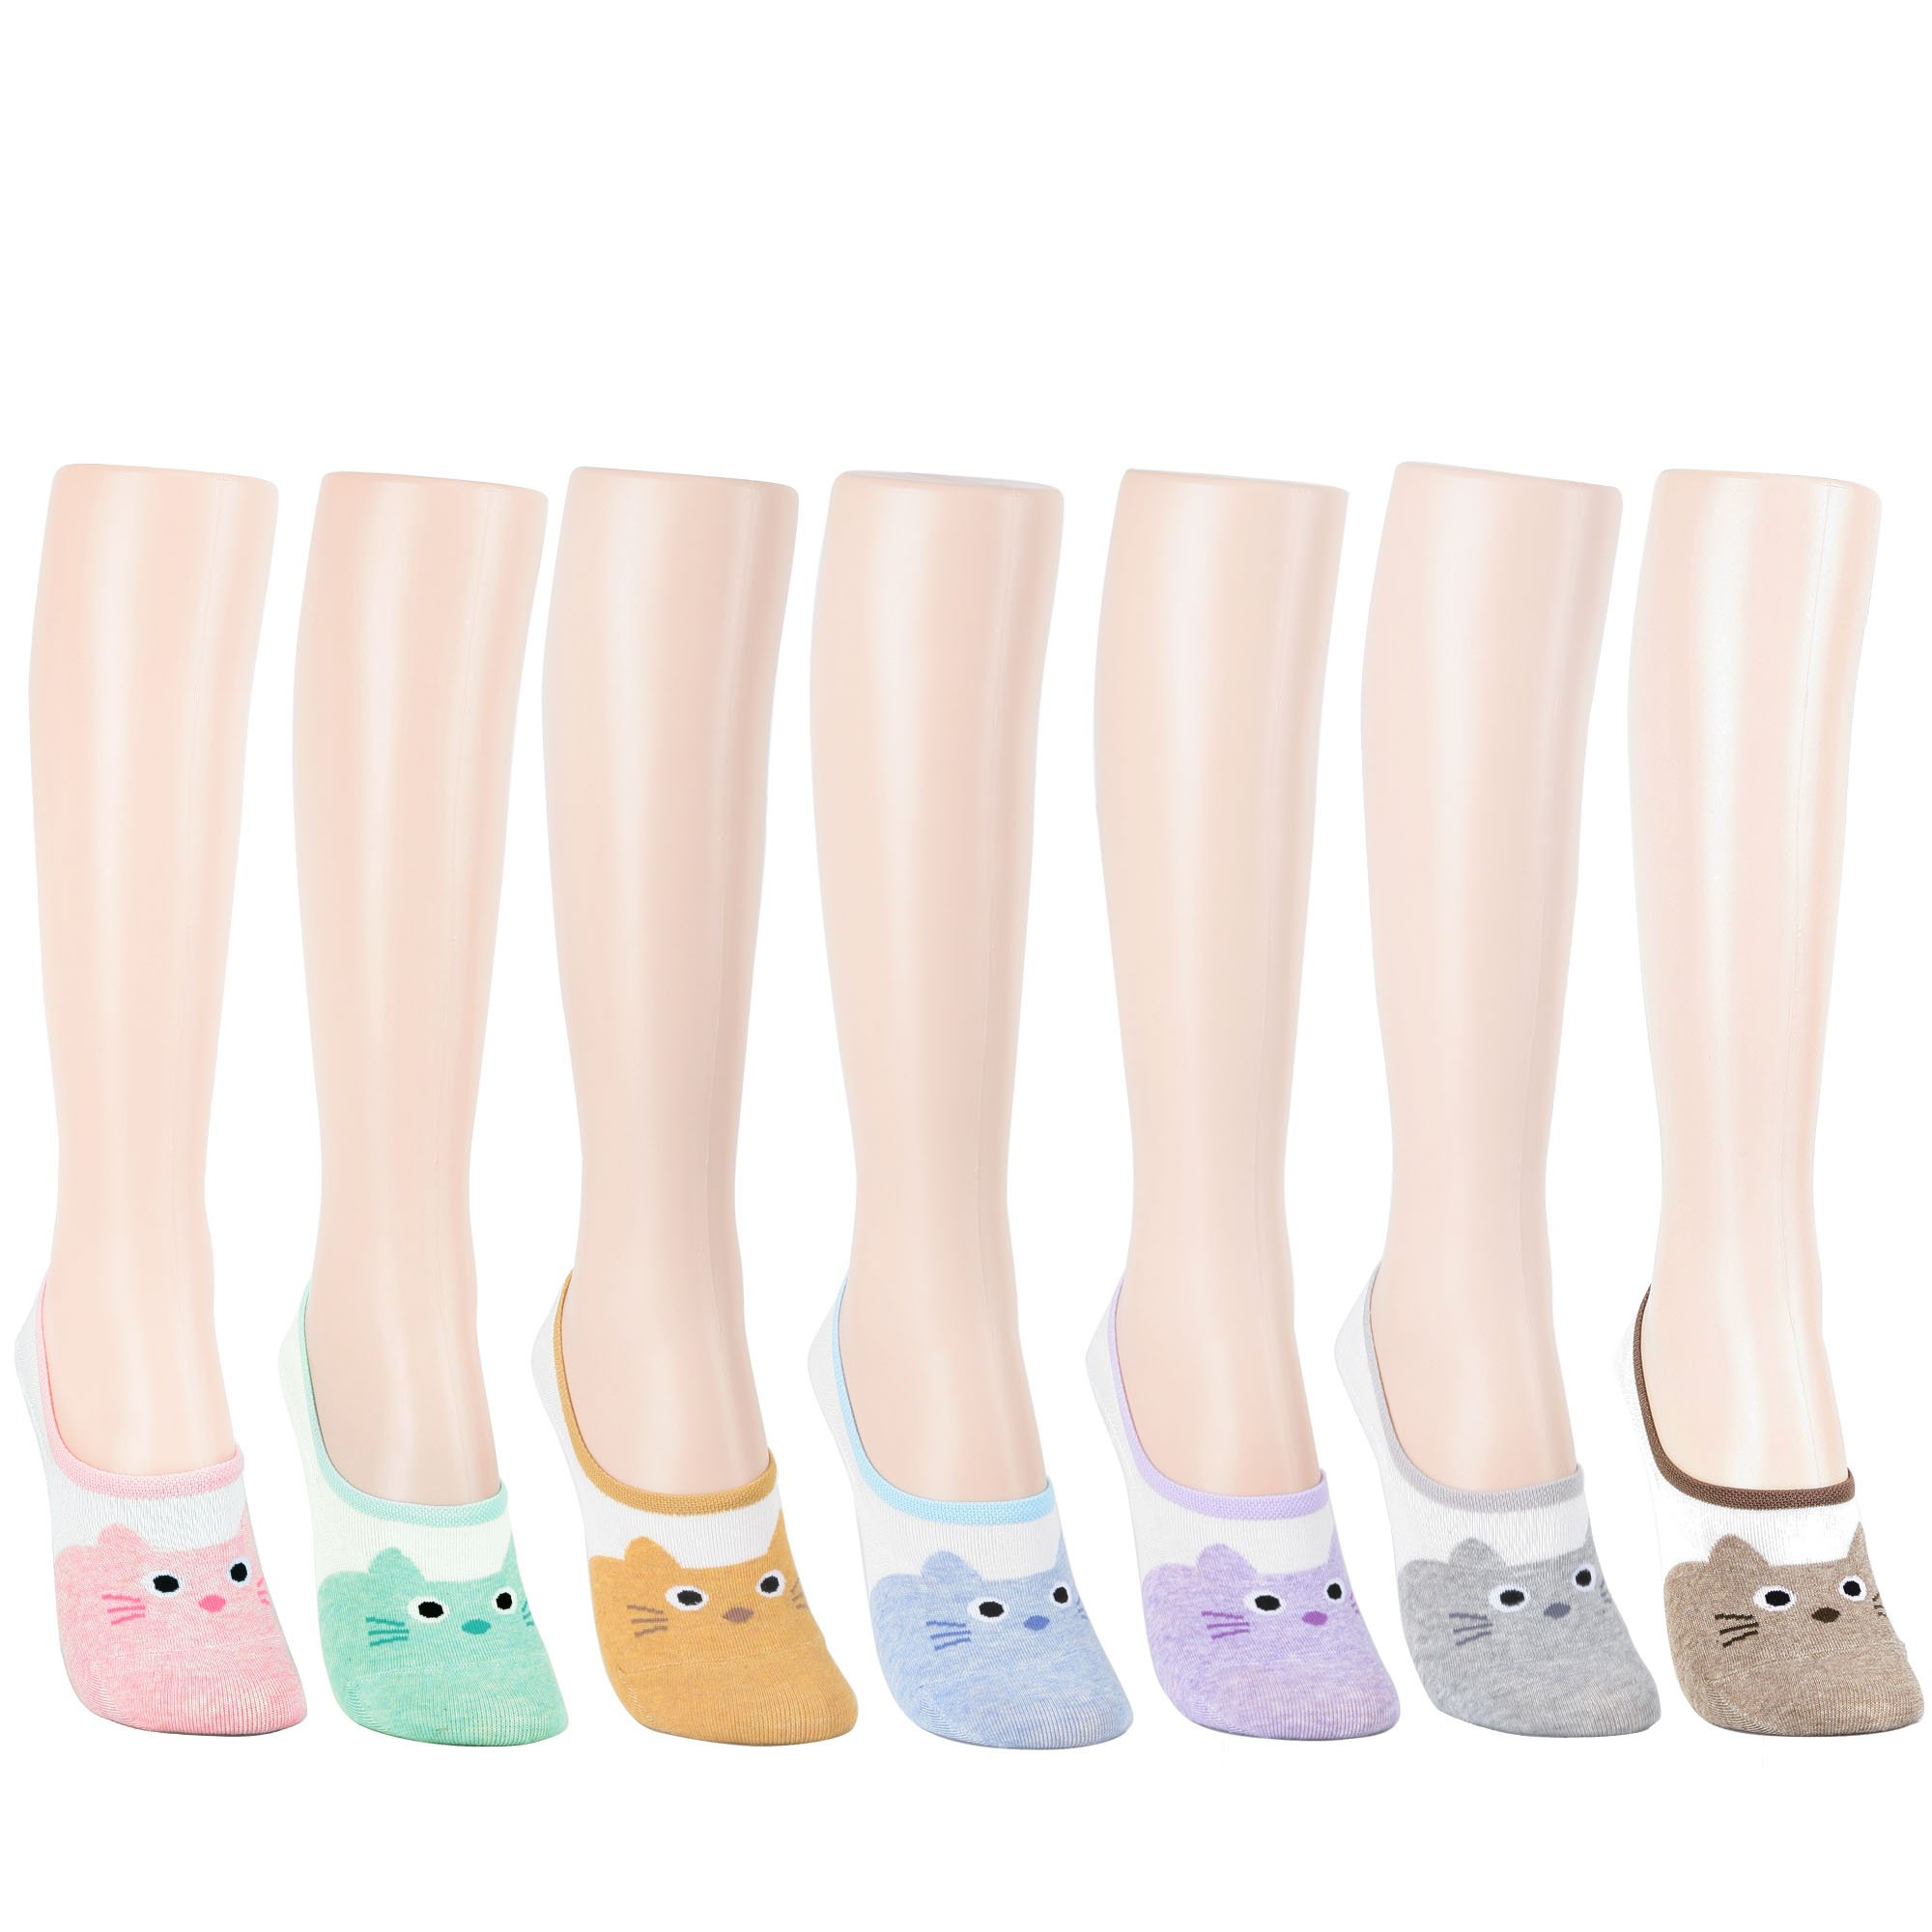 Women's No-show Casual Liner Socks